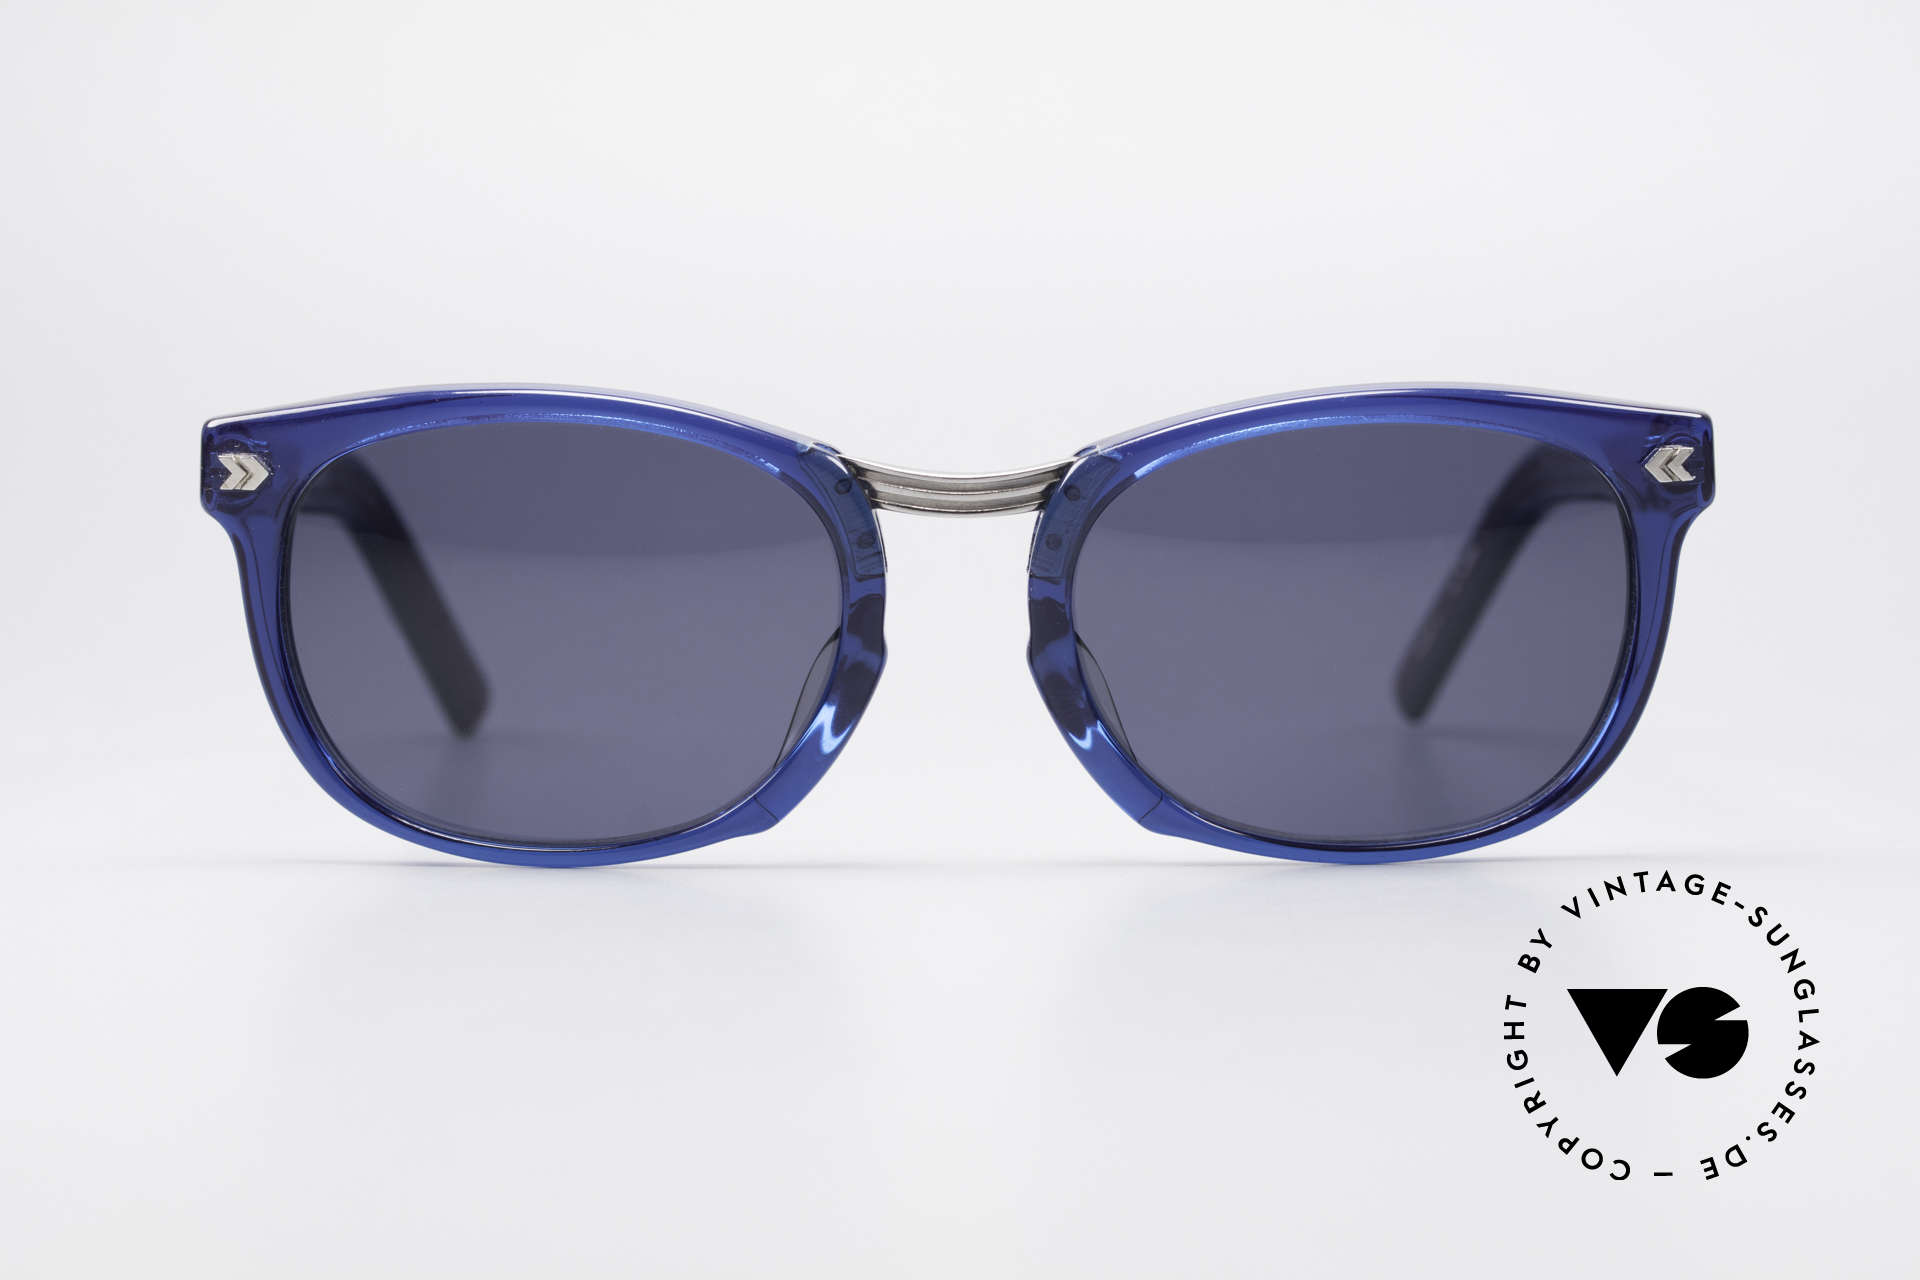 Jean Paul Gaultier 58-1271 Junior Gaultier Sunglasses, massive frame with conspicuous details (eye-catcher), Made for Men and Women